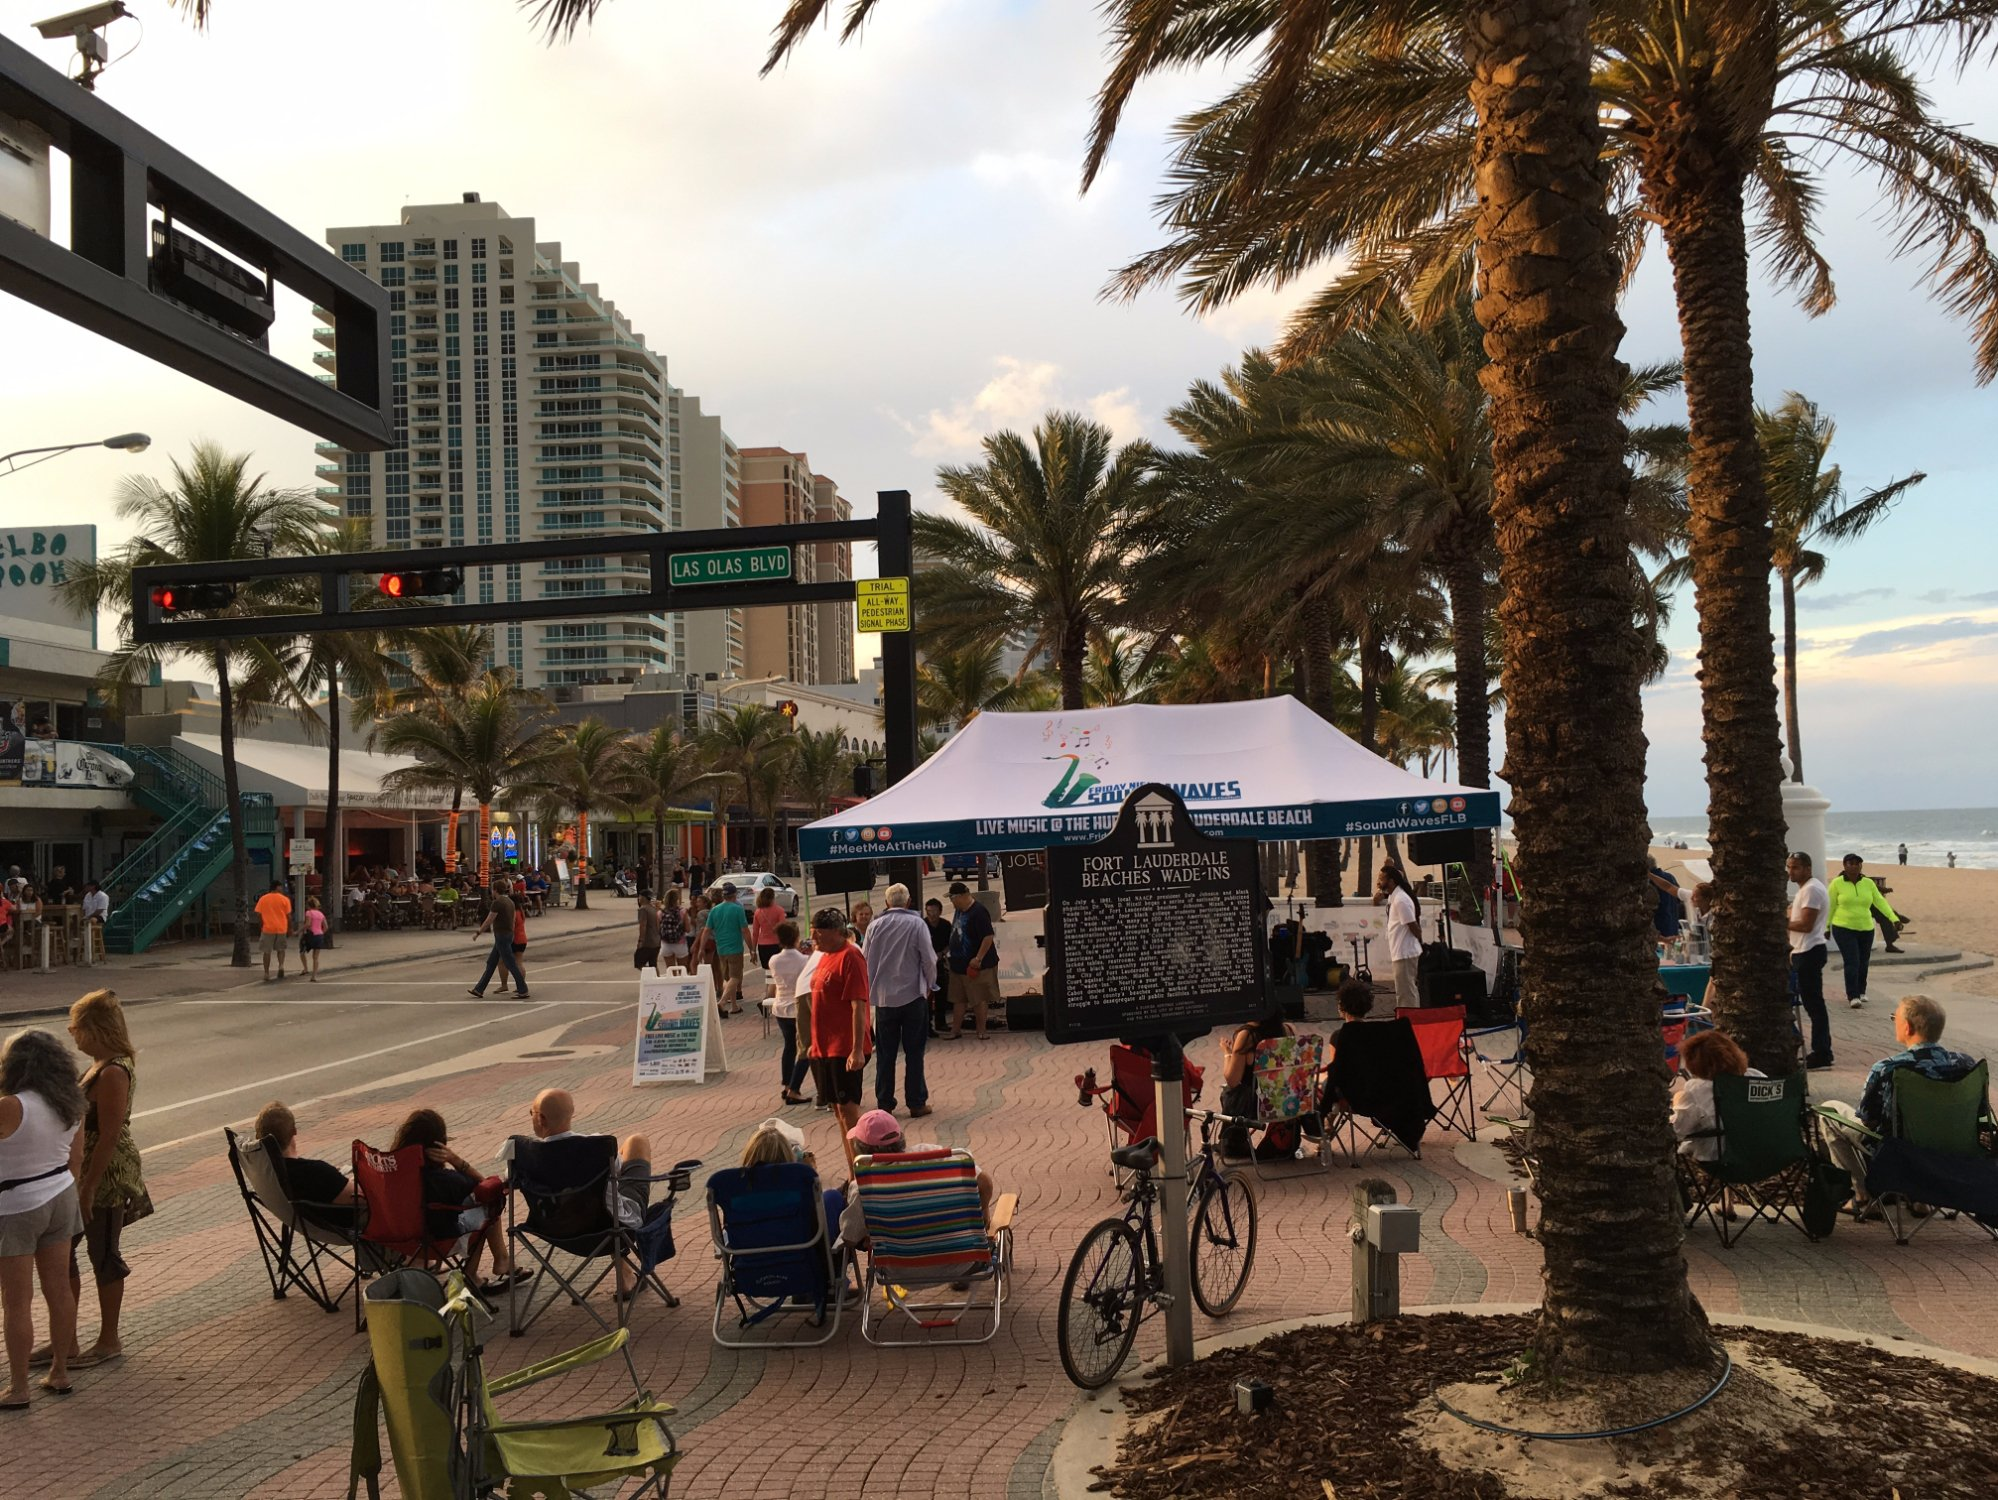 Free Concerts on the Beach